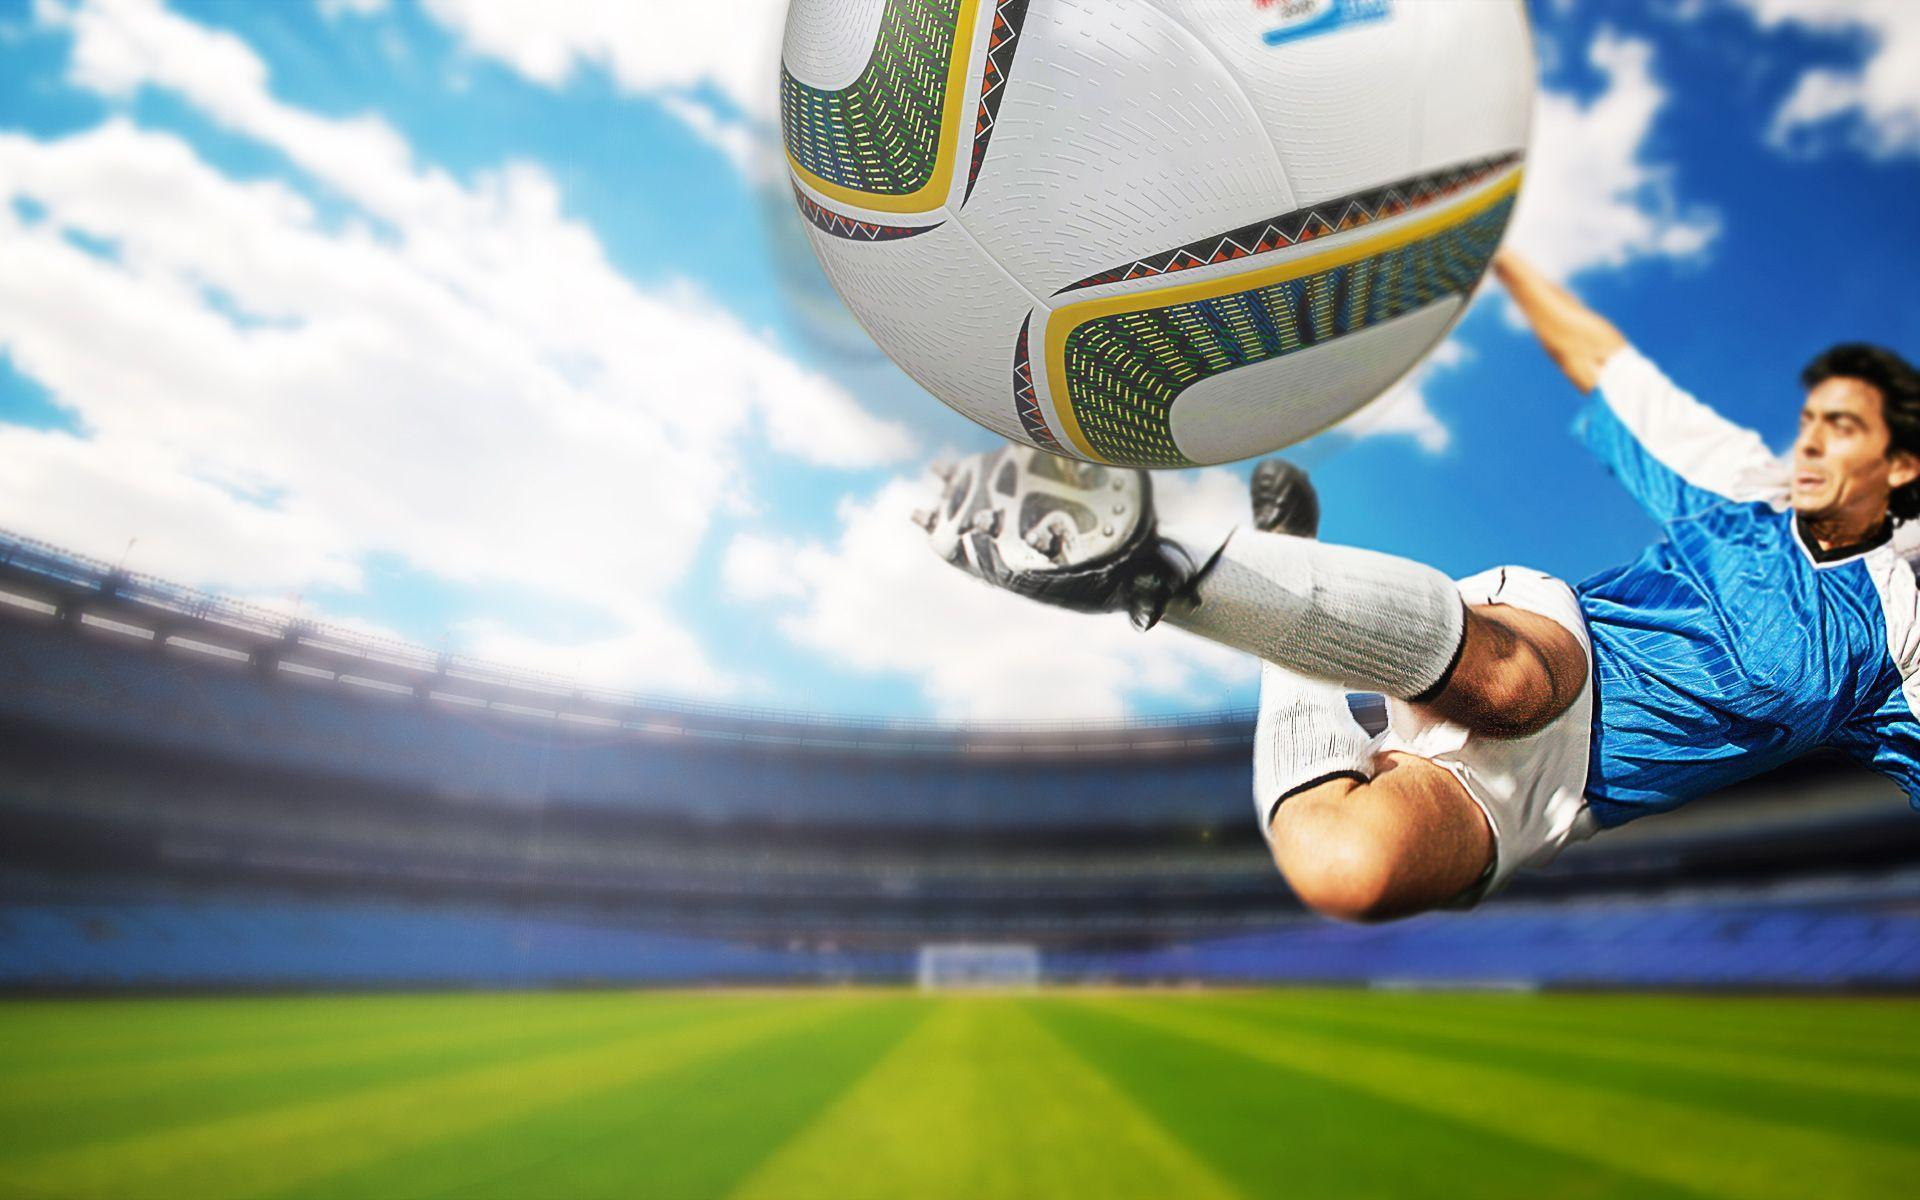 Soccer Player in Action wallpaper – wallpaper free download